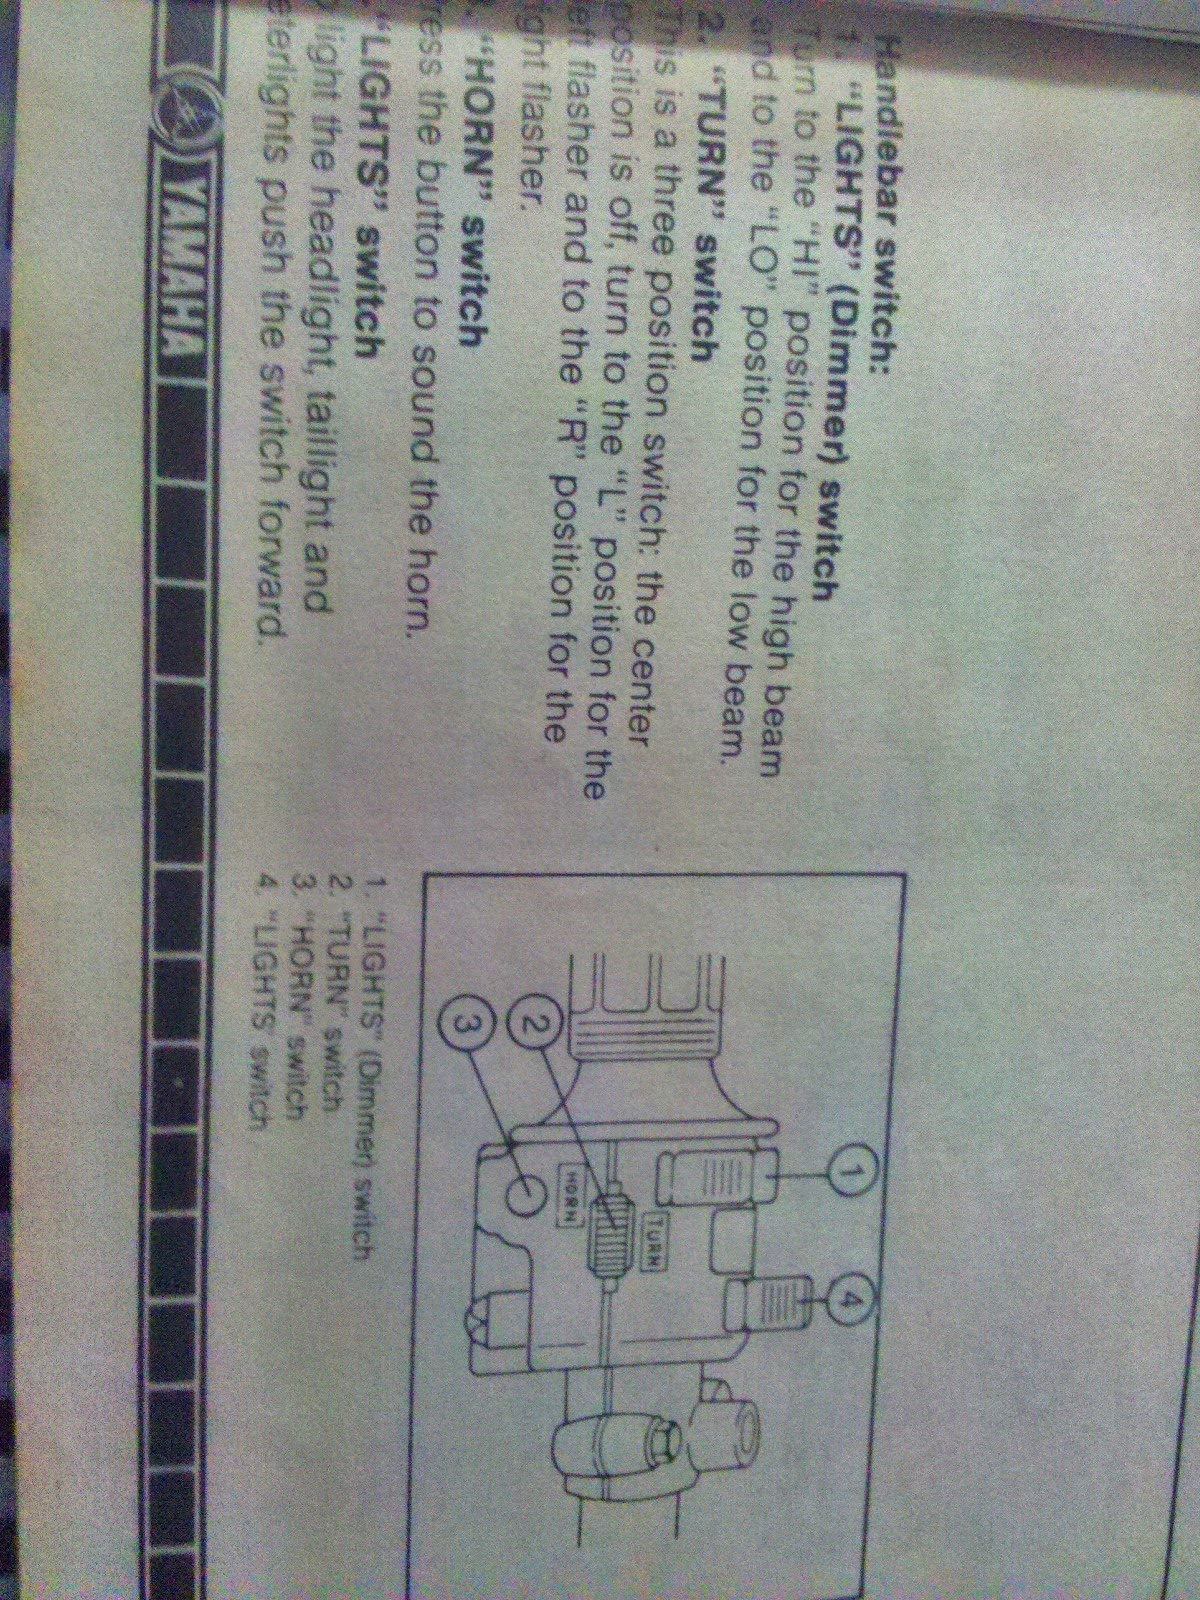 C360_2011-04-03+10-36-16 Yamaha Rx Wiring Diagram on suzuki quadrunner 160 parts diagram, yamaha wiring code, yamaha solenoid diagram, yamaha schematics, yamaha steering diagram, yamaha motor diagram, yamaha ignition diagram,